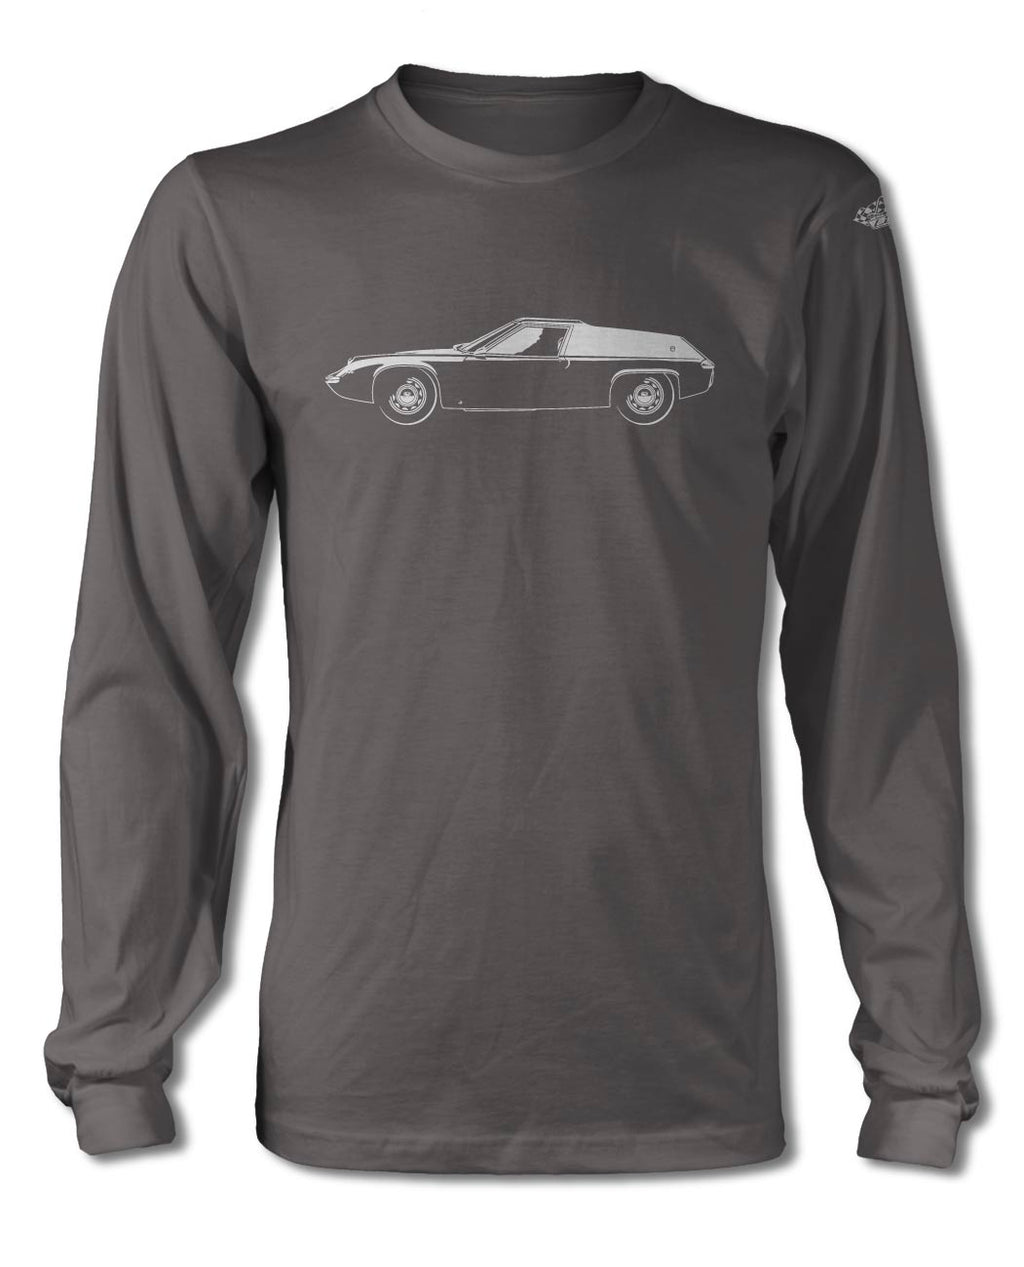 Lotus Europa S1 T-Shirt - Long Sleeves - Side View